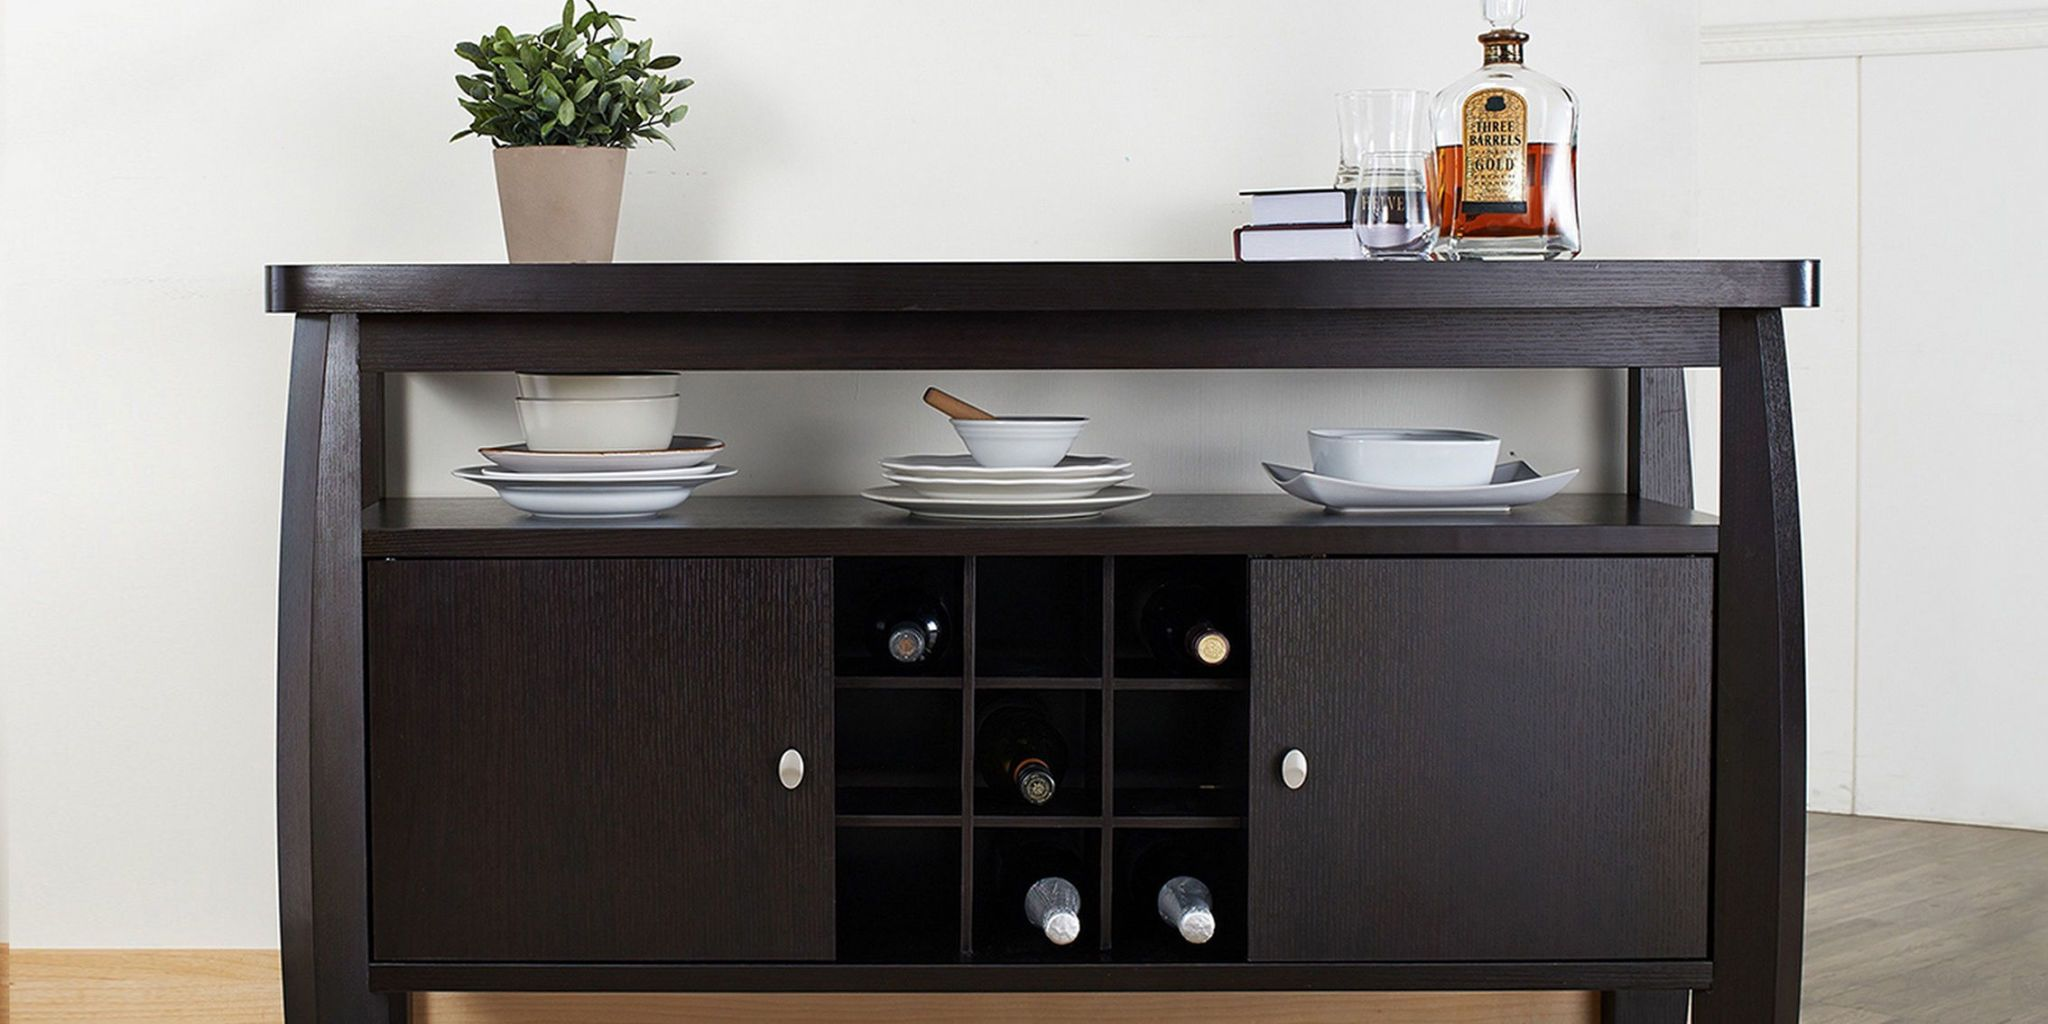 11 best sideboards and buffets in 2018 reviews of sideboards rh bestproducts com contemporary dining room sideboards and buffets dining buffet and sideboards